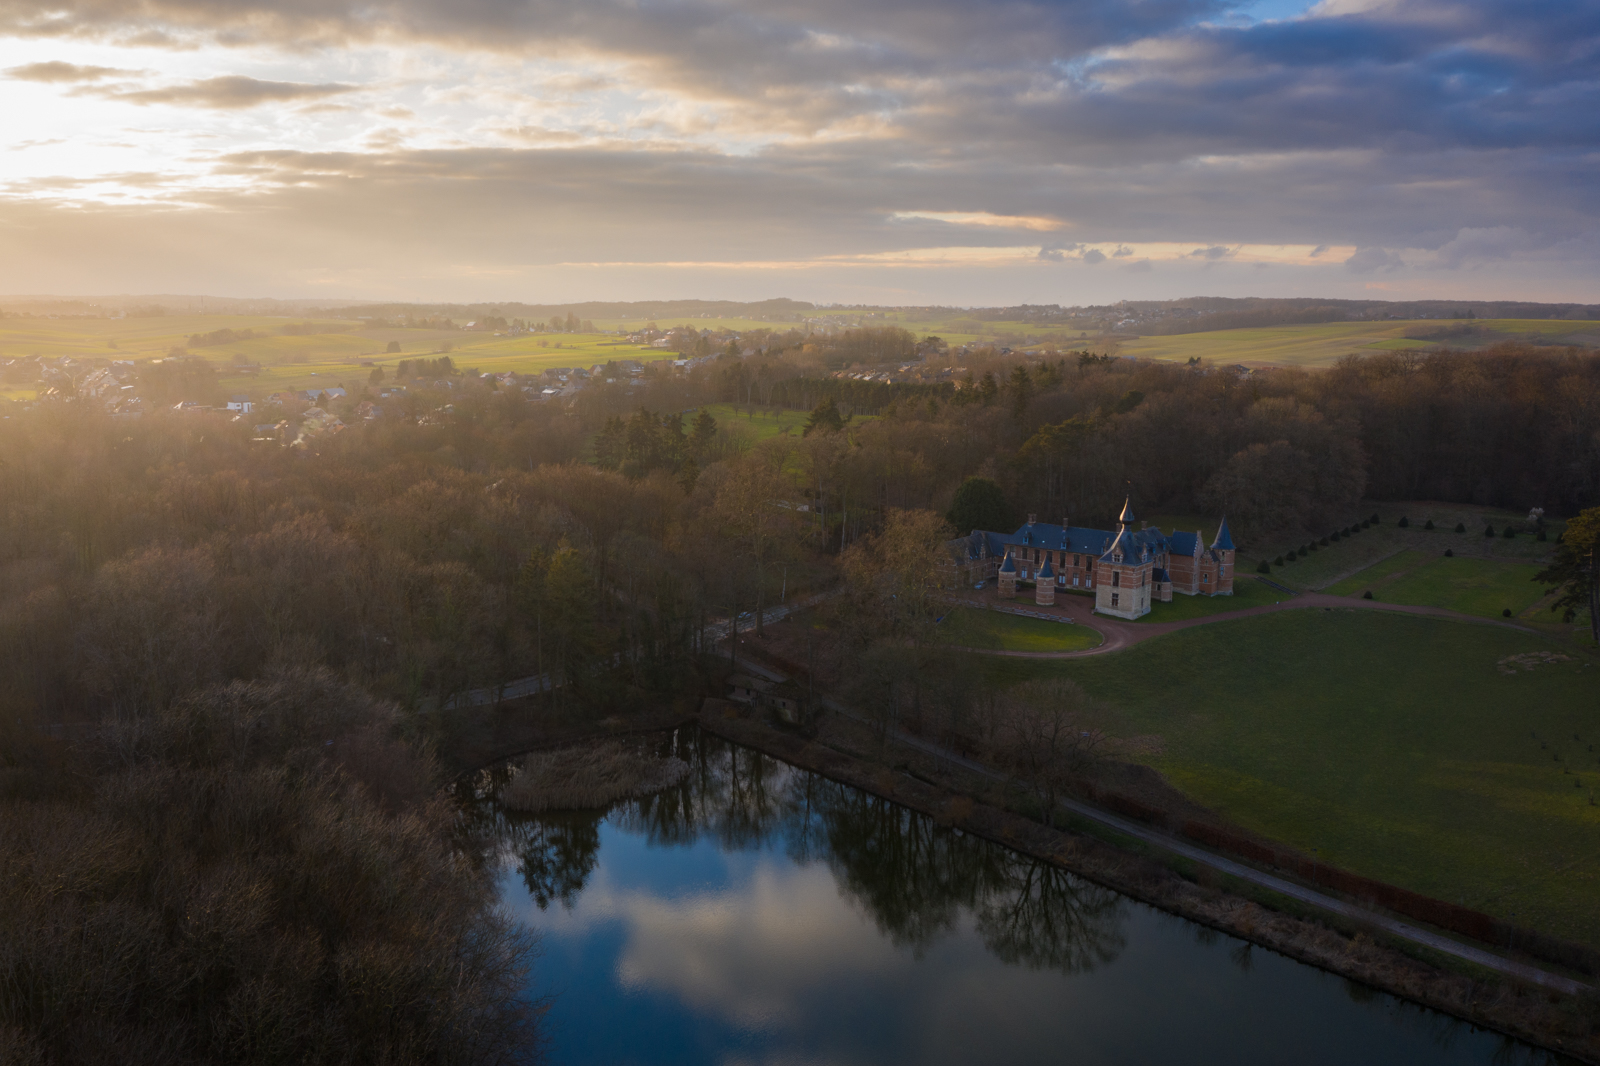 Leefdaal castle at sunrise as clouds reflect in the nearby lake